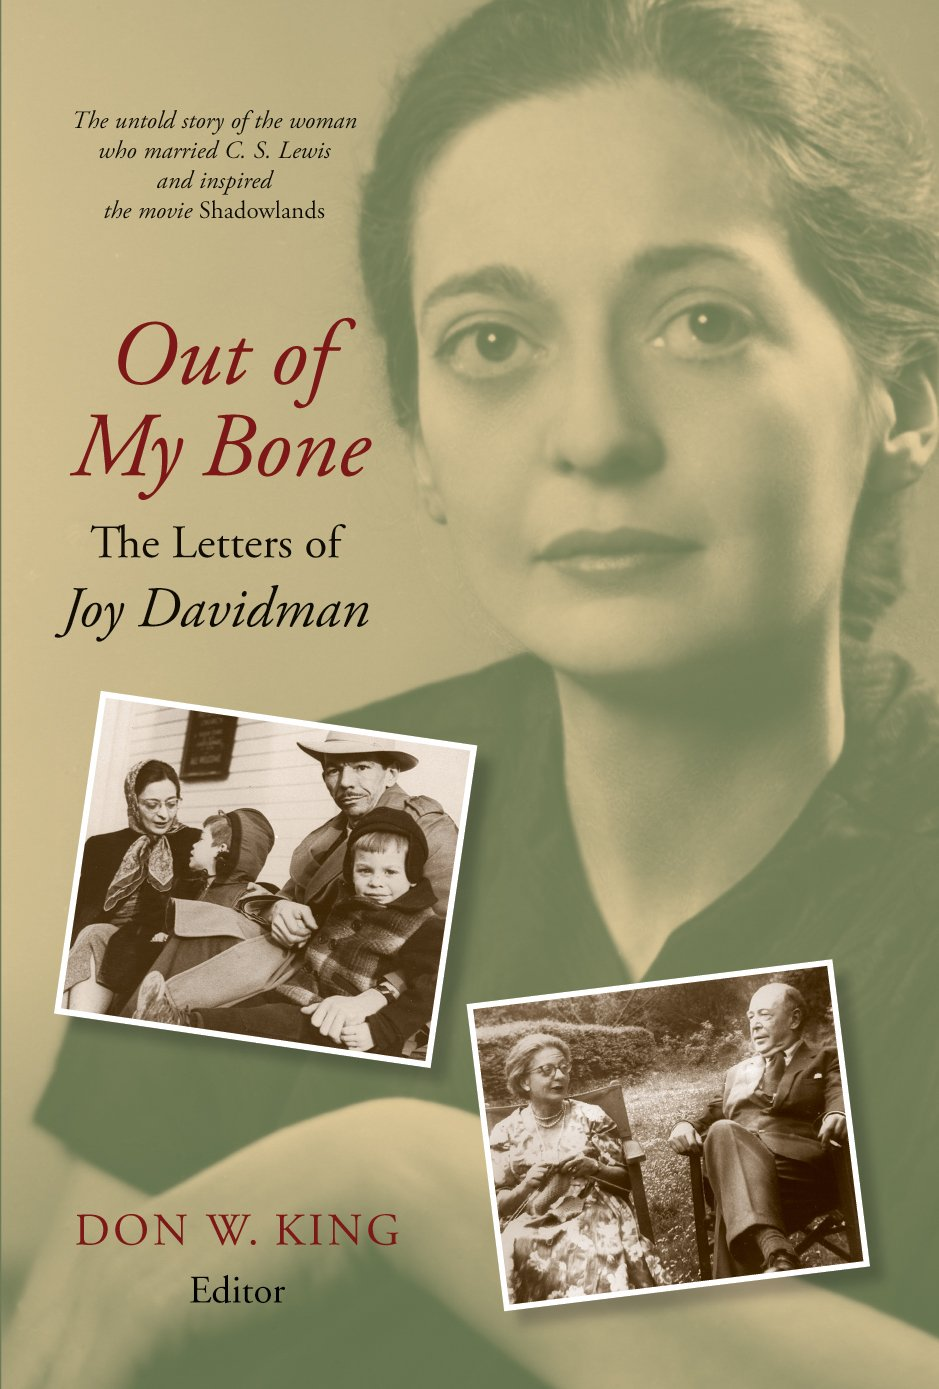 Out of My Bone: The Letters of Joy Davidman Hardcover – June 19, 2009